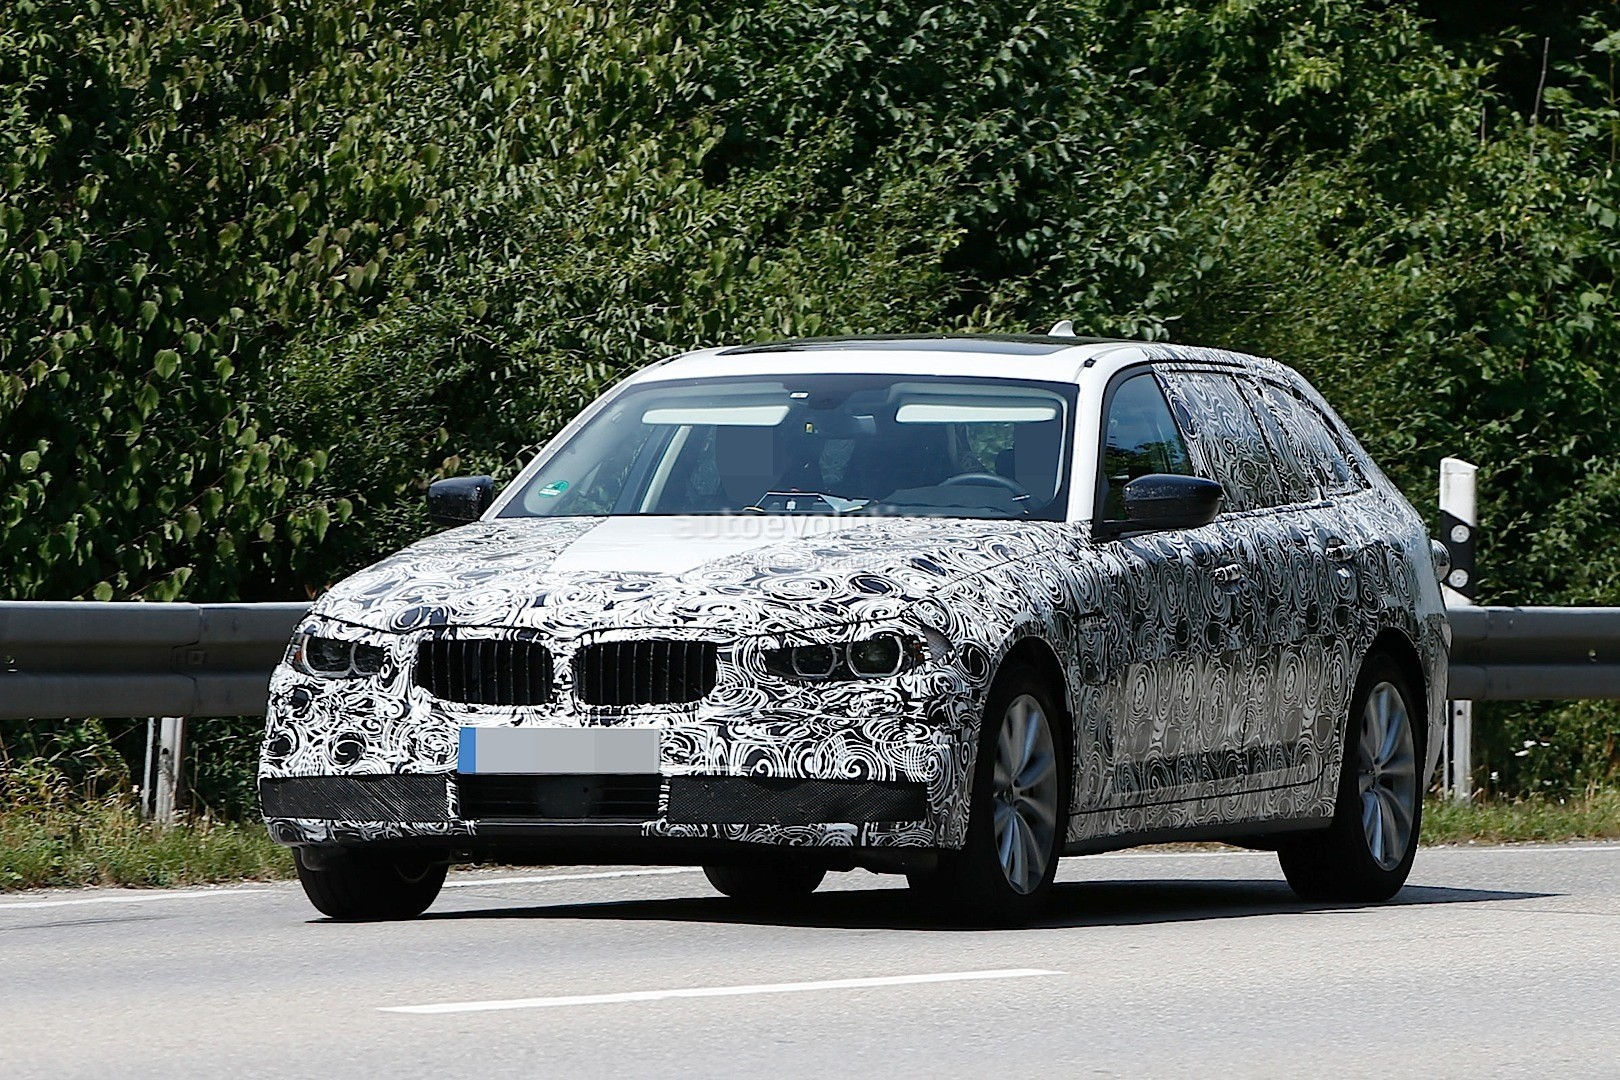 2017 bmw g31 5 series touring spied prototypes show new. Black Bedroom Furniture Sets. Home Design Ideas